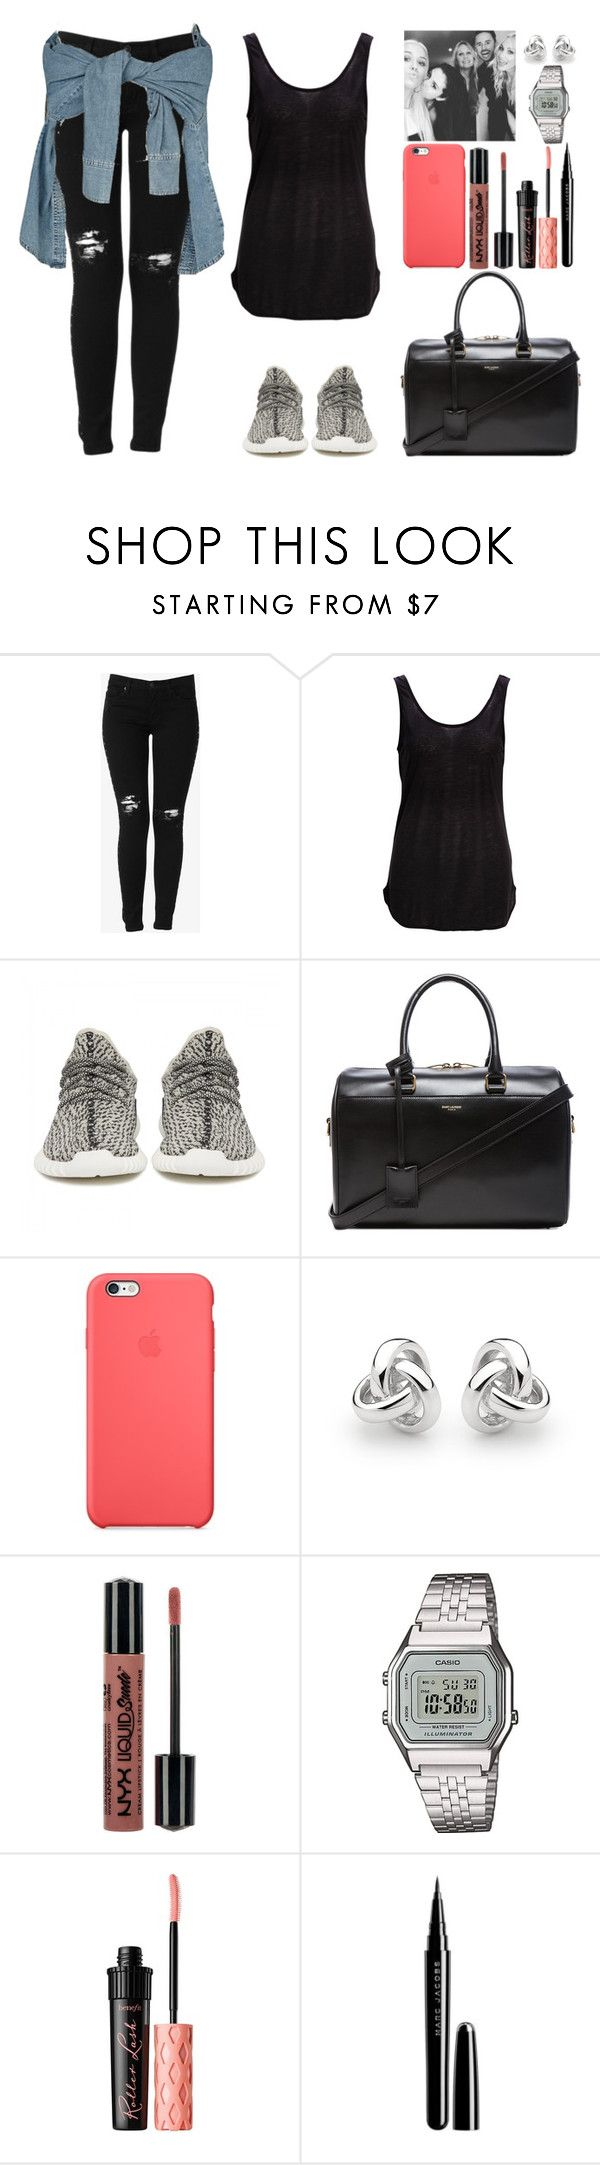 """D.636 (Selfie with Lottie, Helene, Paul and Lou)"" by dudapamphiro02 ❤ liked on Polyvore featuring Hudson Jeans, SELECTED, adidas Originals, Yves Saint Laurent, Black Apple, Georgini, Casio, Benefit and Marc Jacobs"